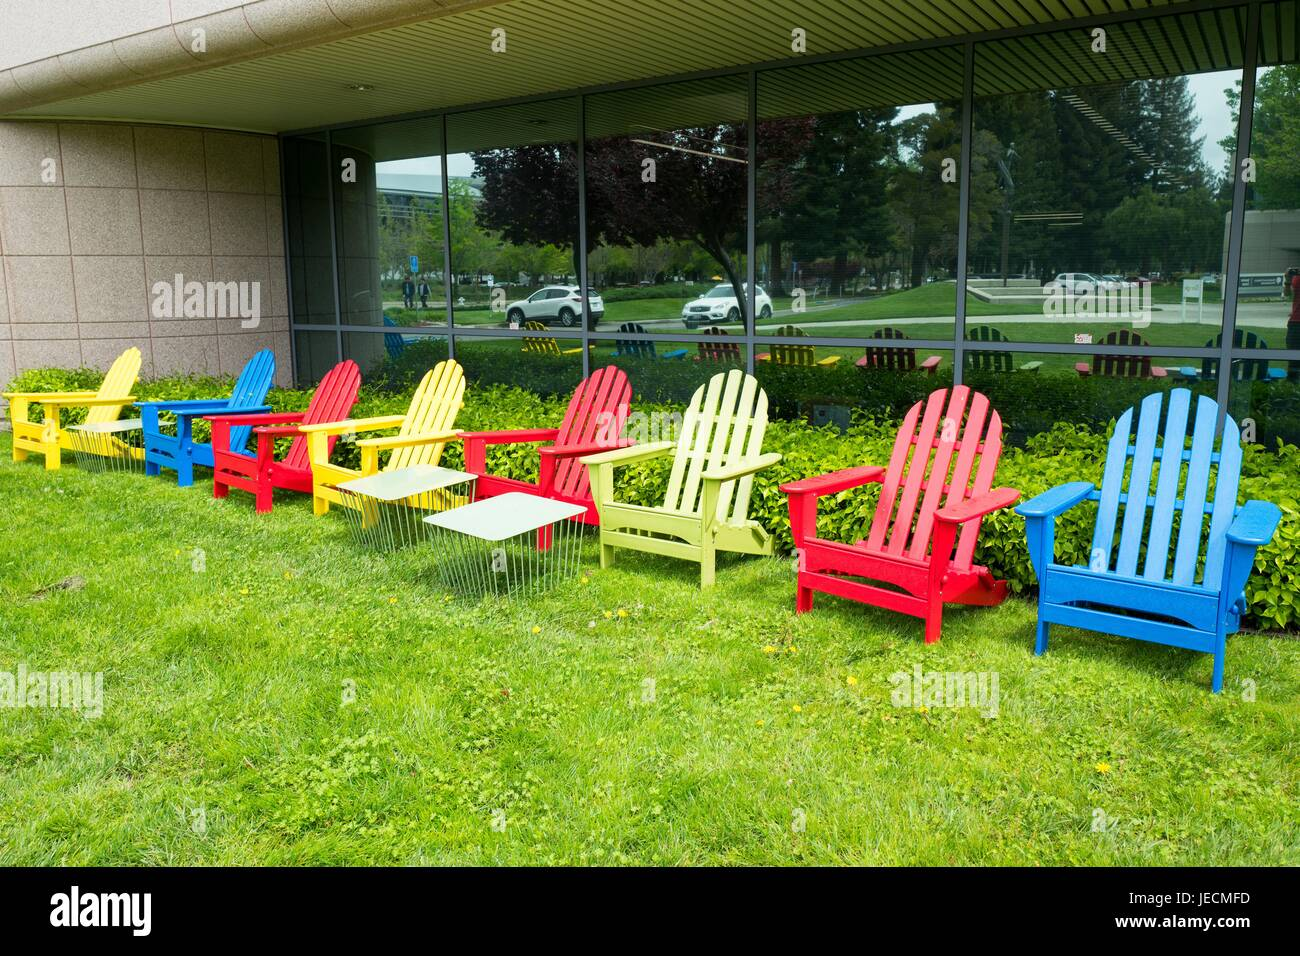 Colorful Adirondack Chairs In Google Inc Brand Colors At The Googleplex,  Headquarters Of Google Inc In The Silicon Valley Town Of Mountain View,  California, ...